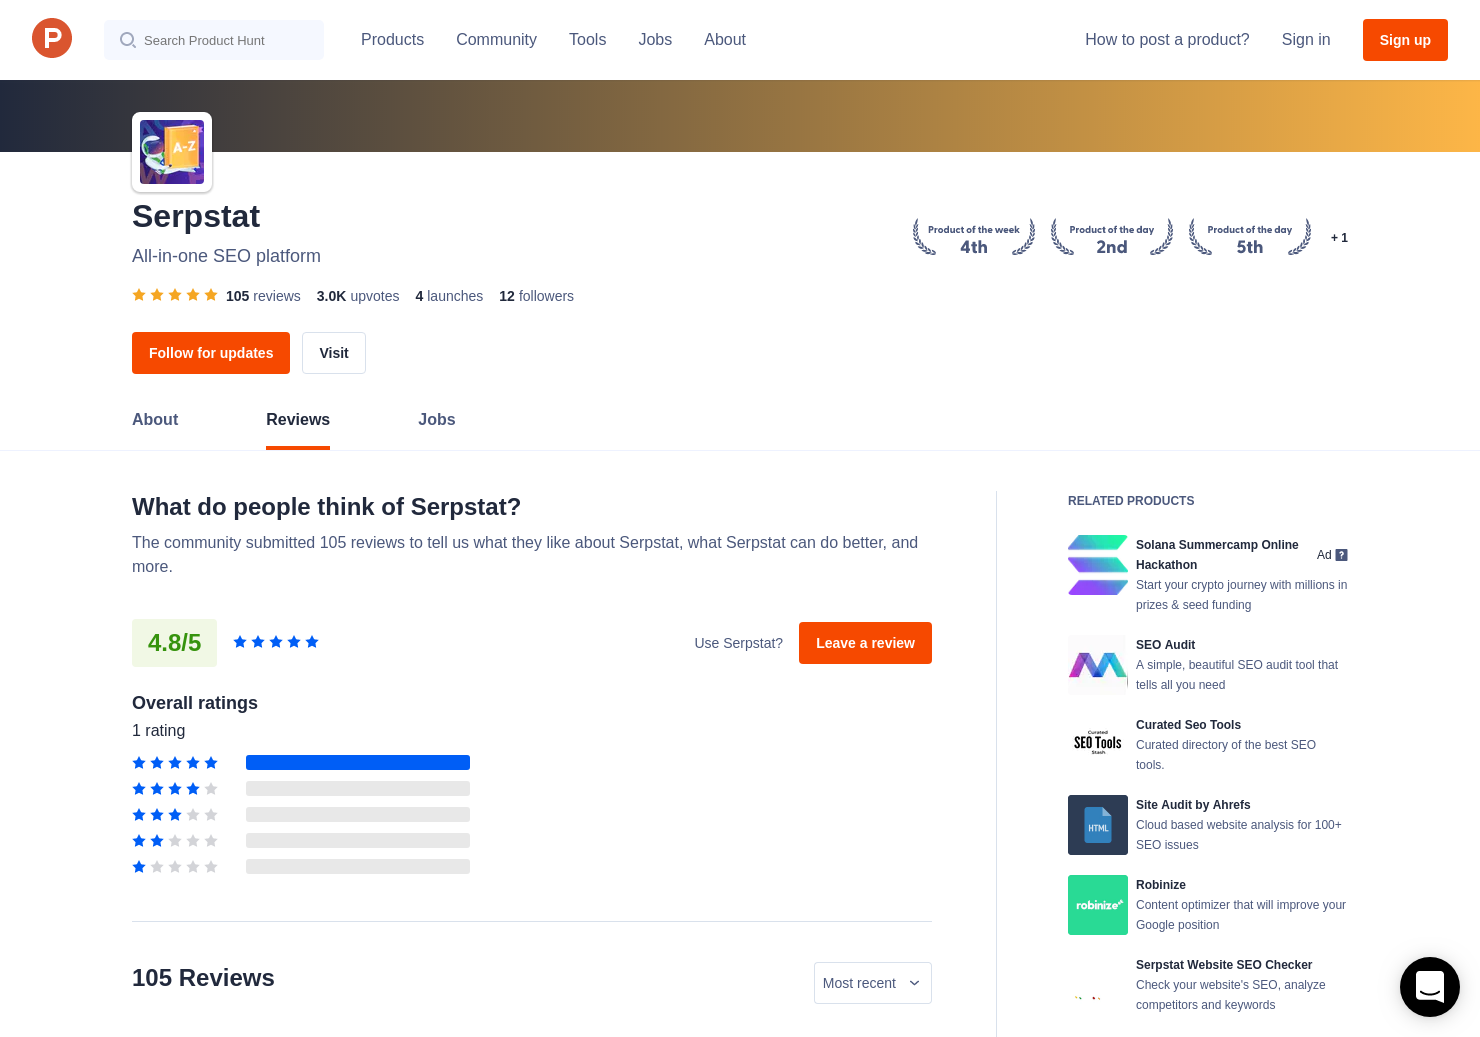 10 Serpstat Reviews - Pros, Cons and Rating | Product Hunt